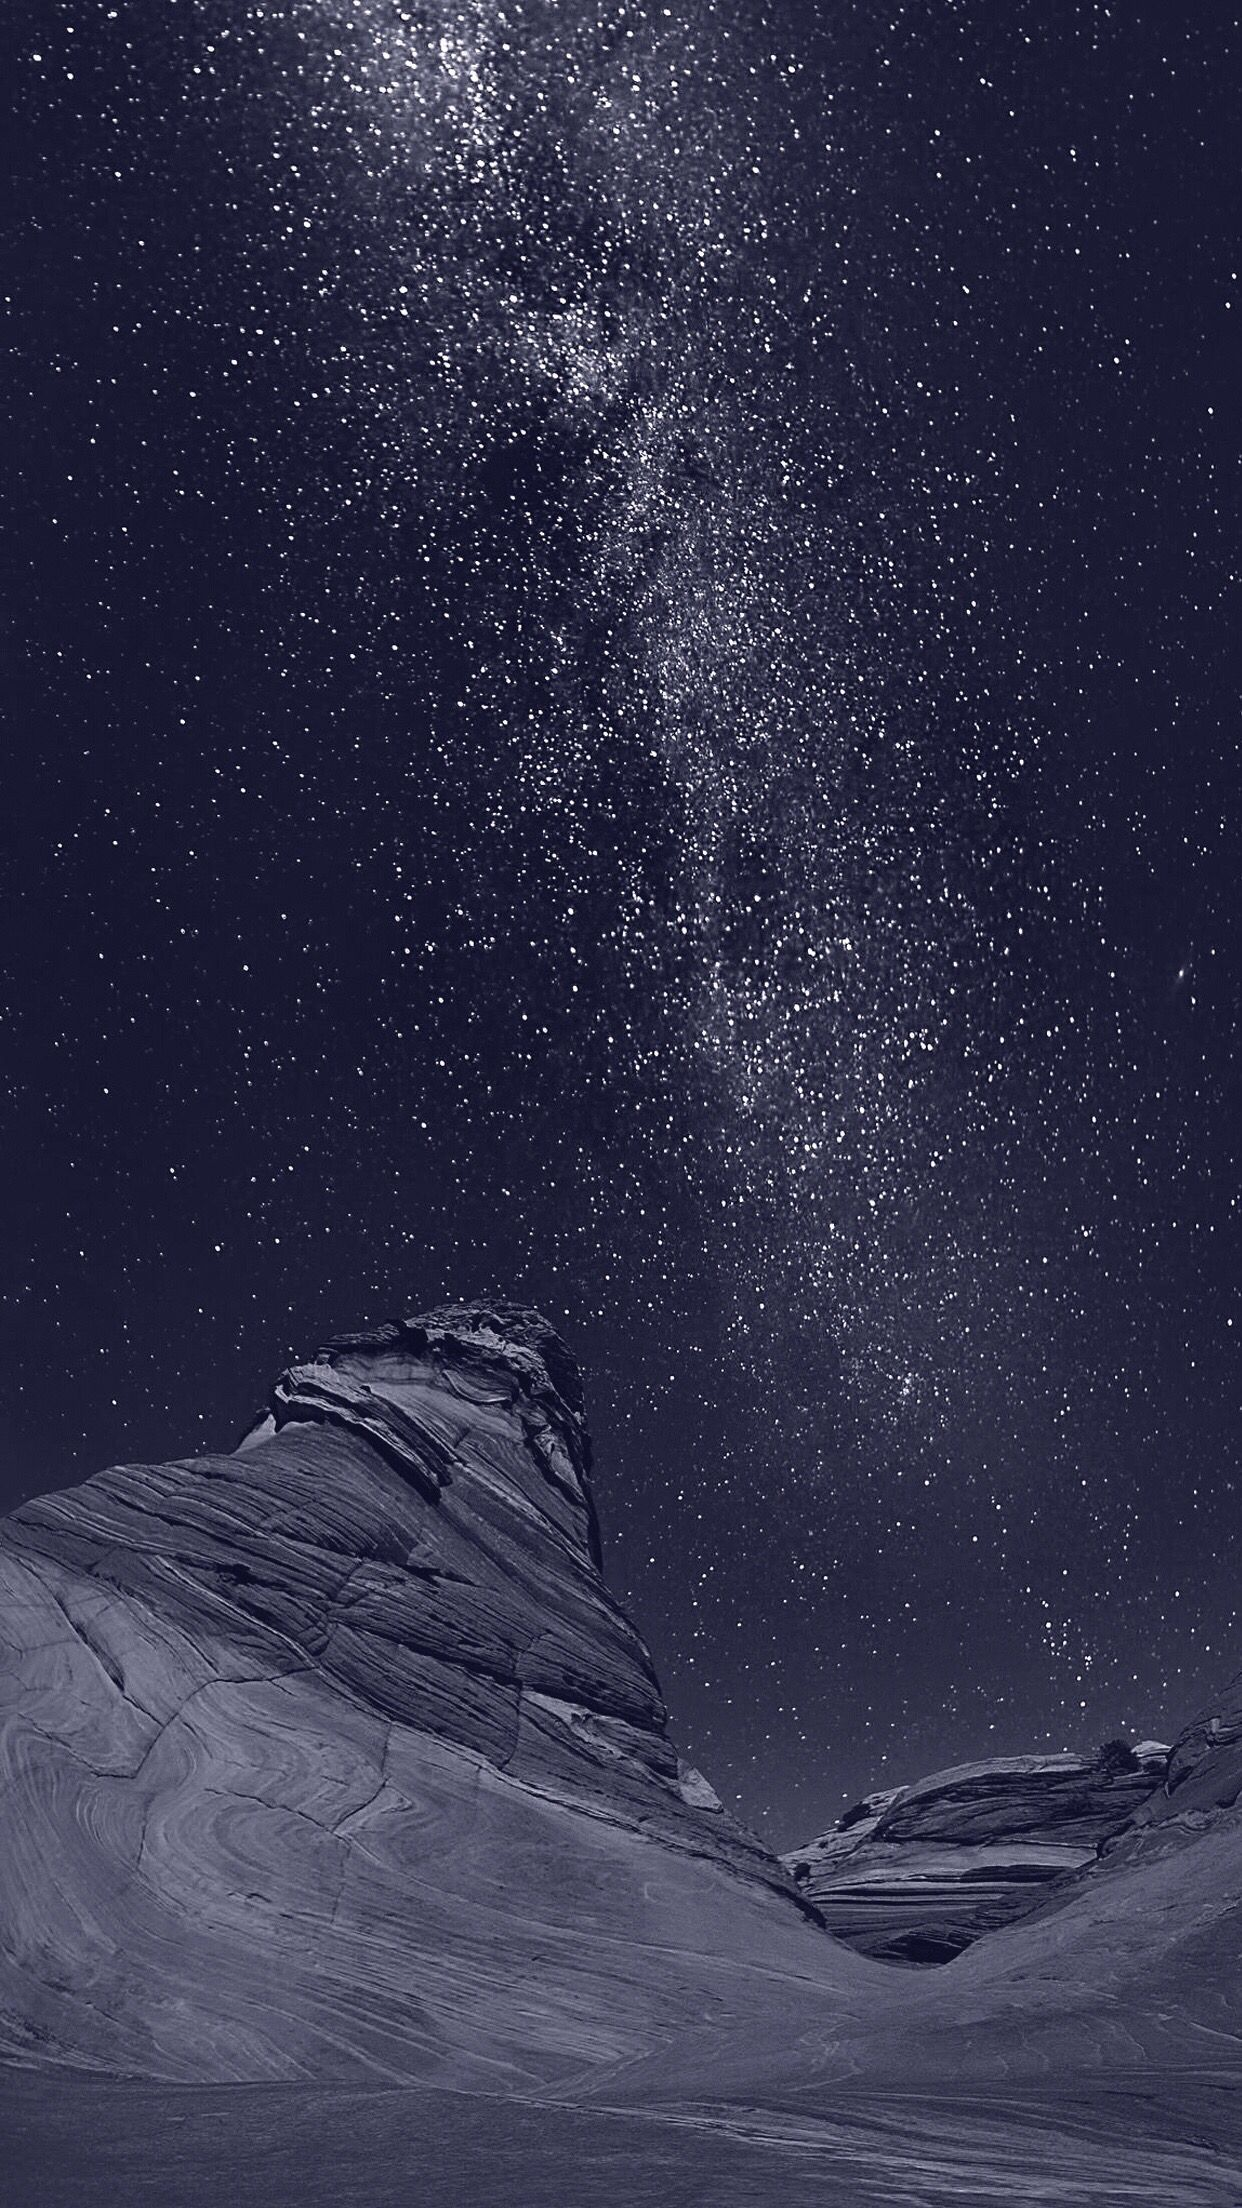 List of Good Sky Phone Wallpaper HD Today by homediy.co